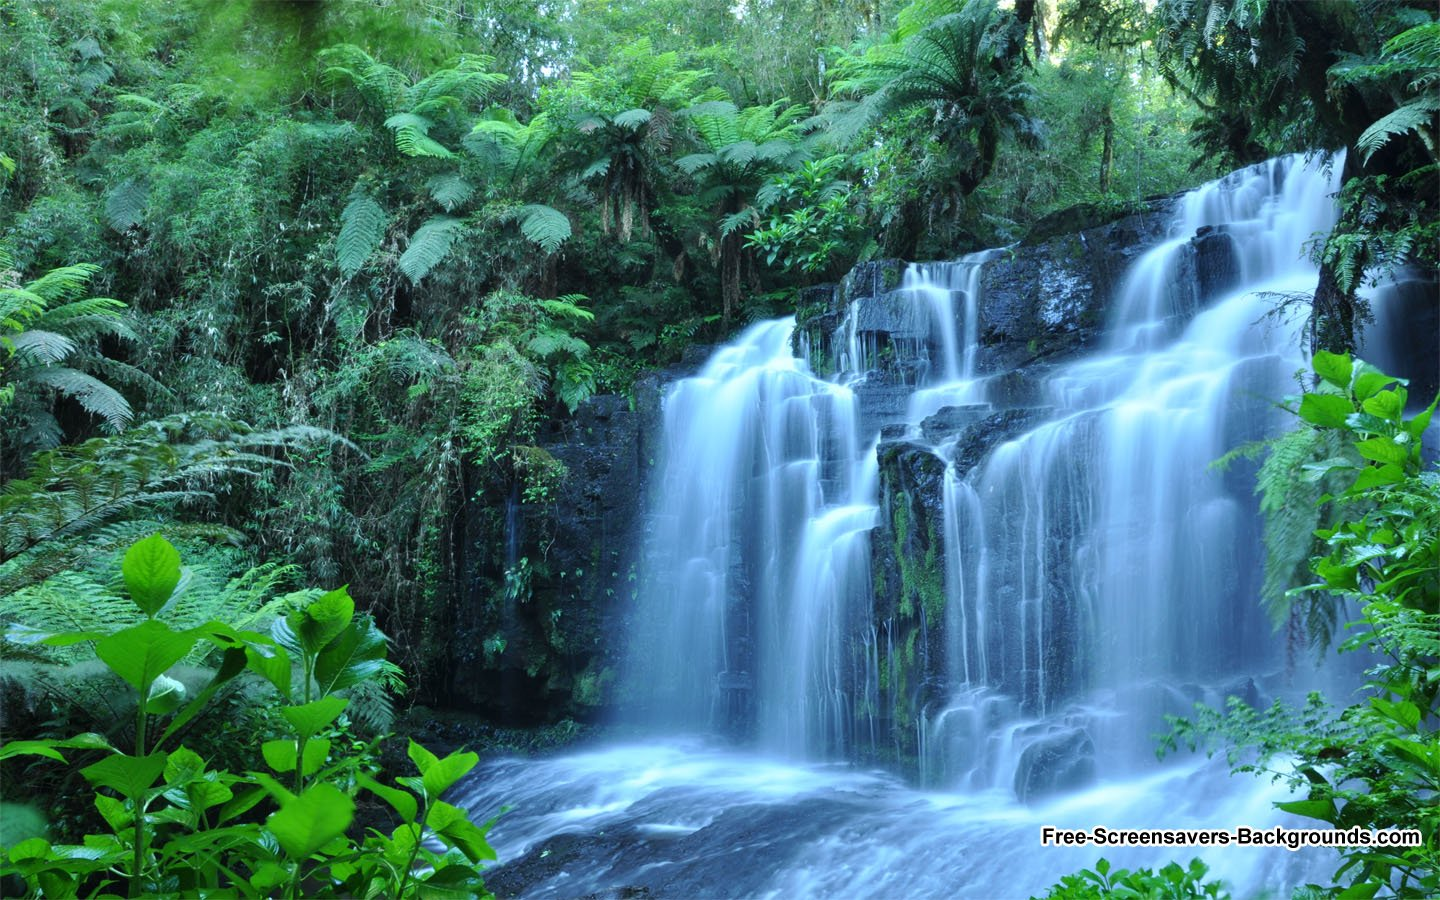 Waterfall Wallpapers Feb 2 2011   Screensavers and Backgrounds 1440x900